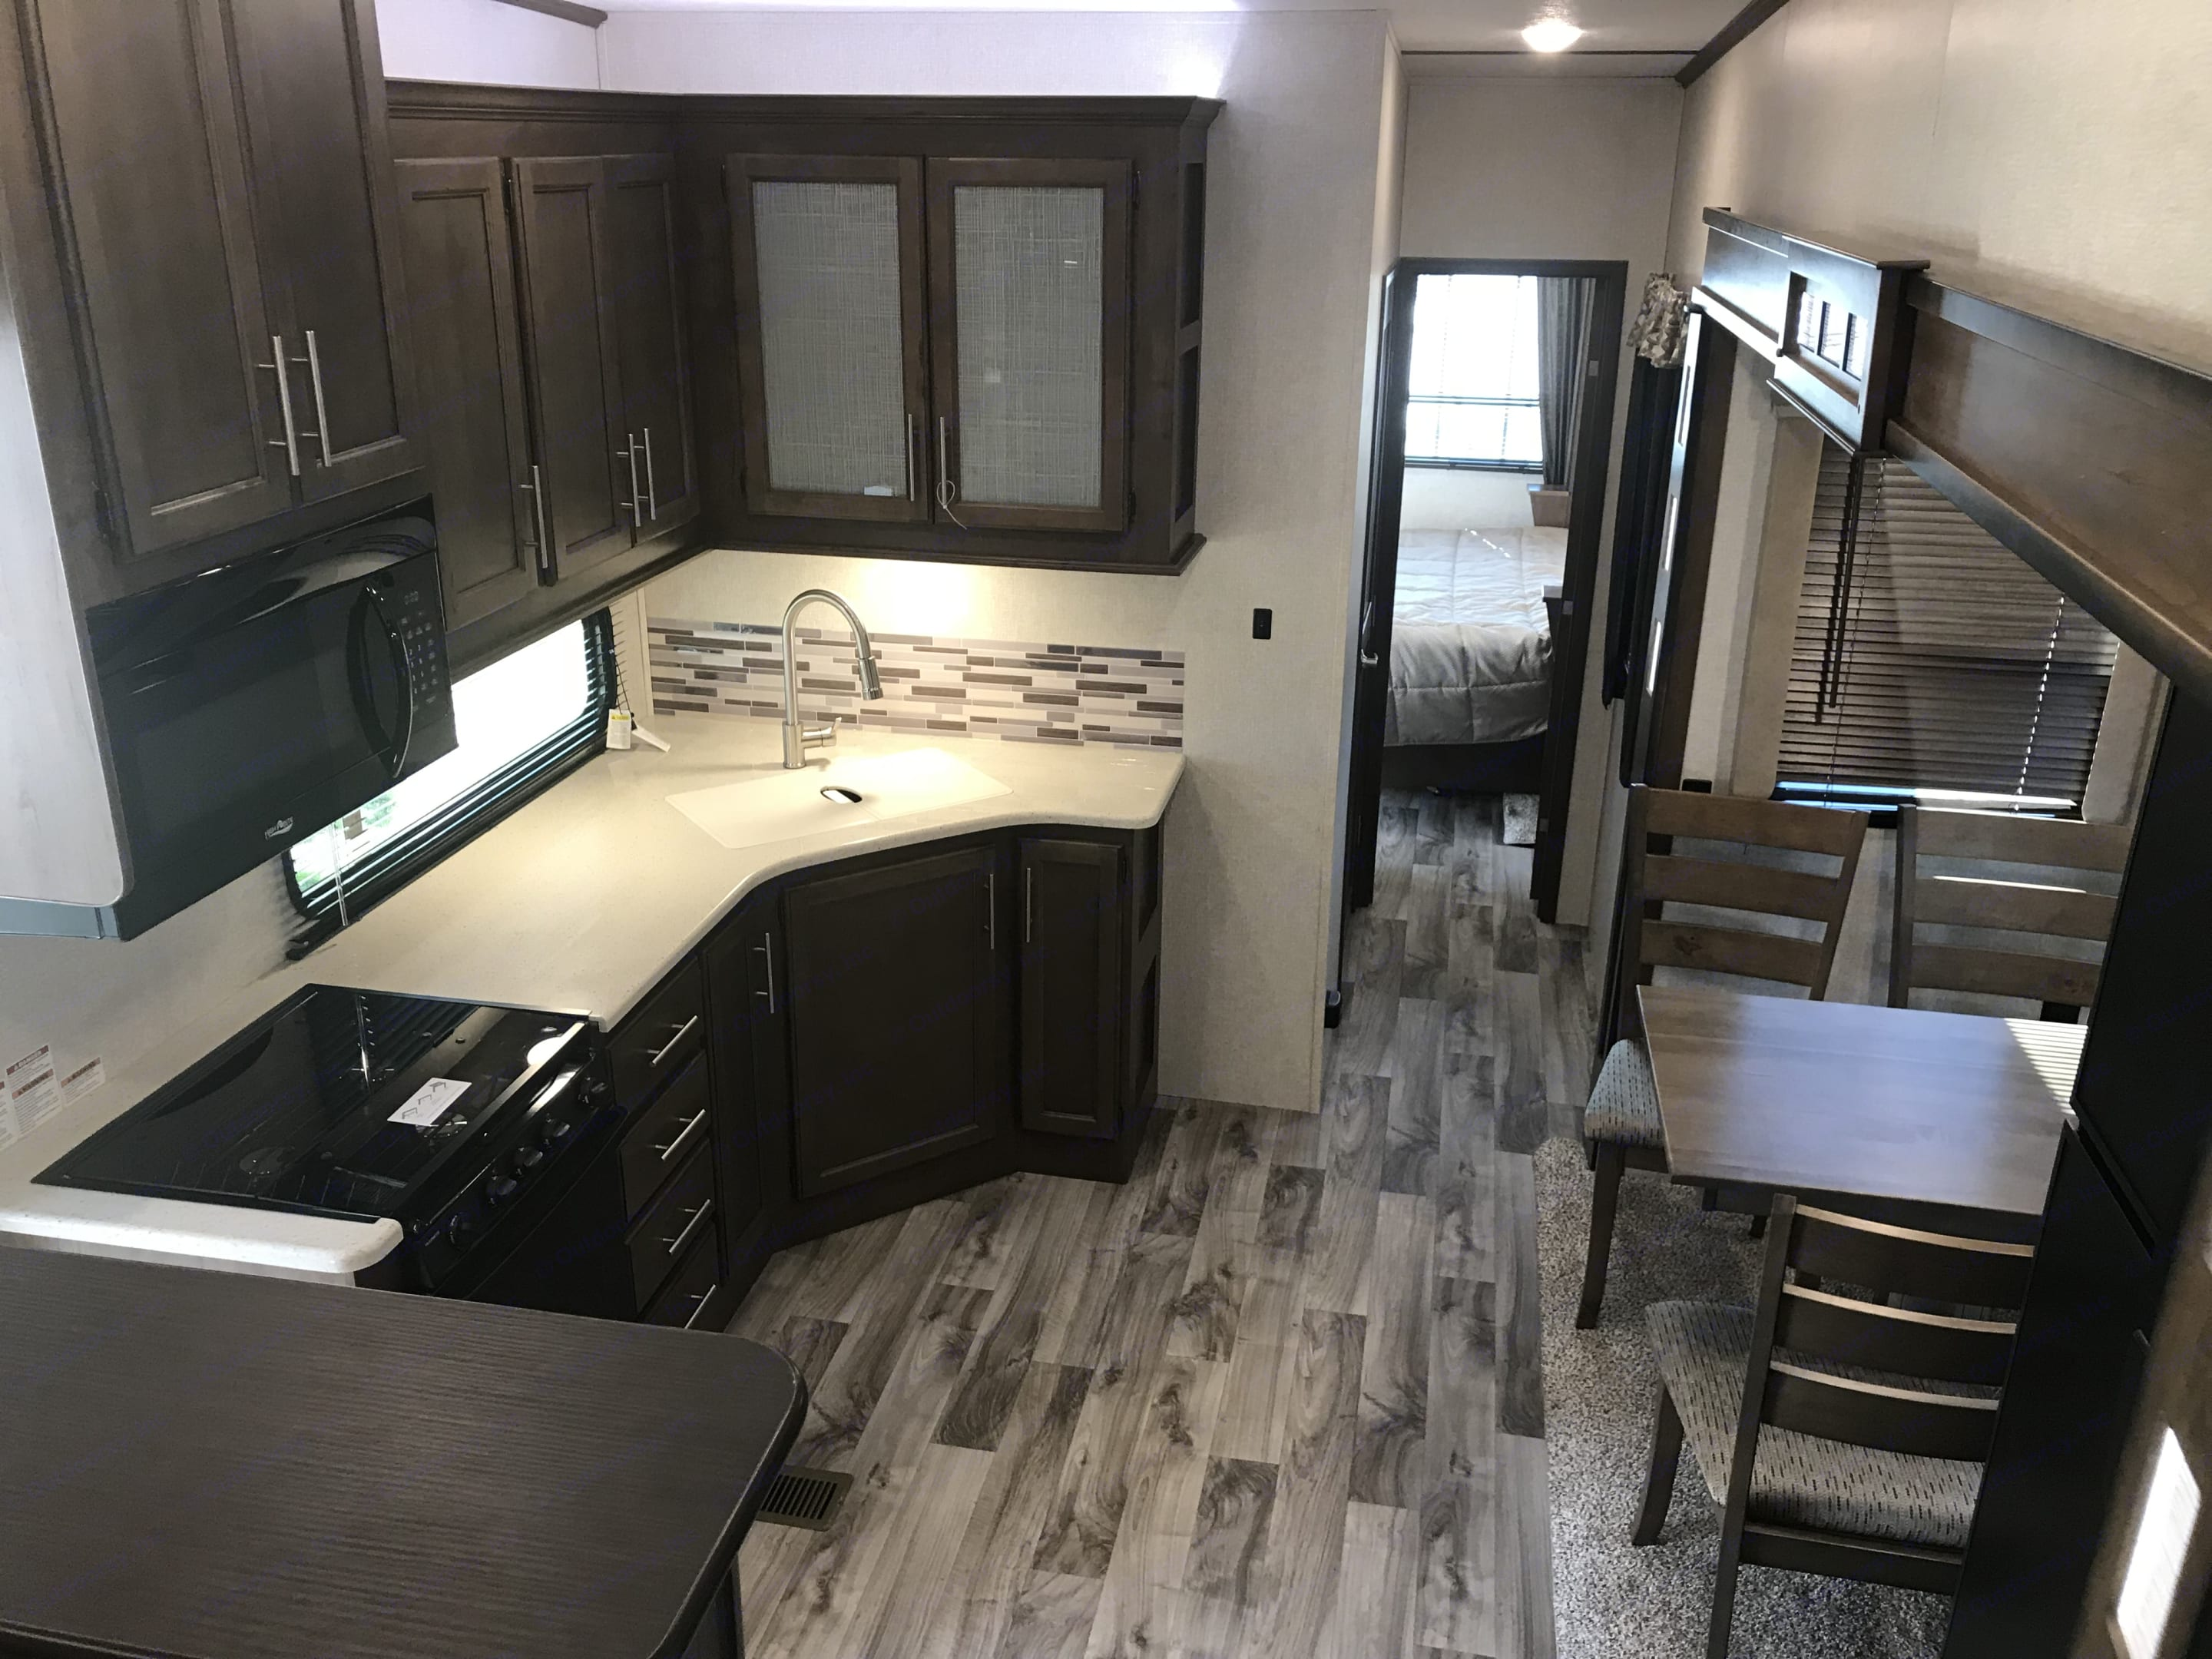 full size kitchen stove oven & microwave dinning for 4. Keystone Cougar 2018